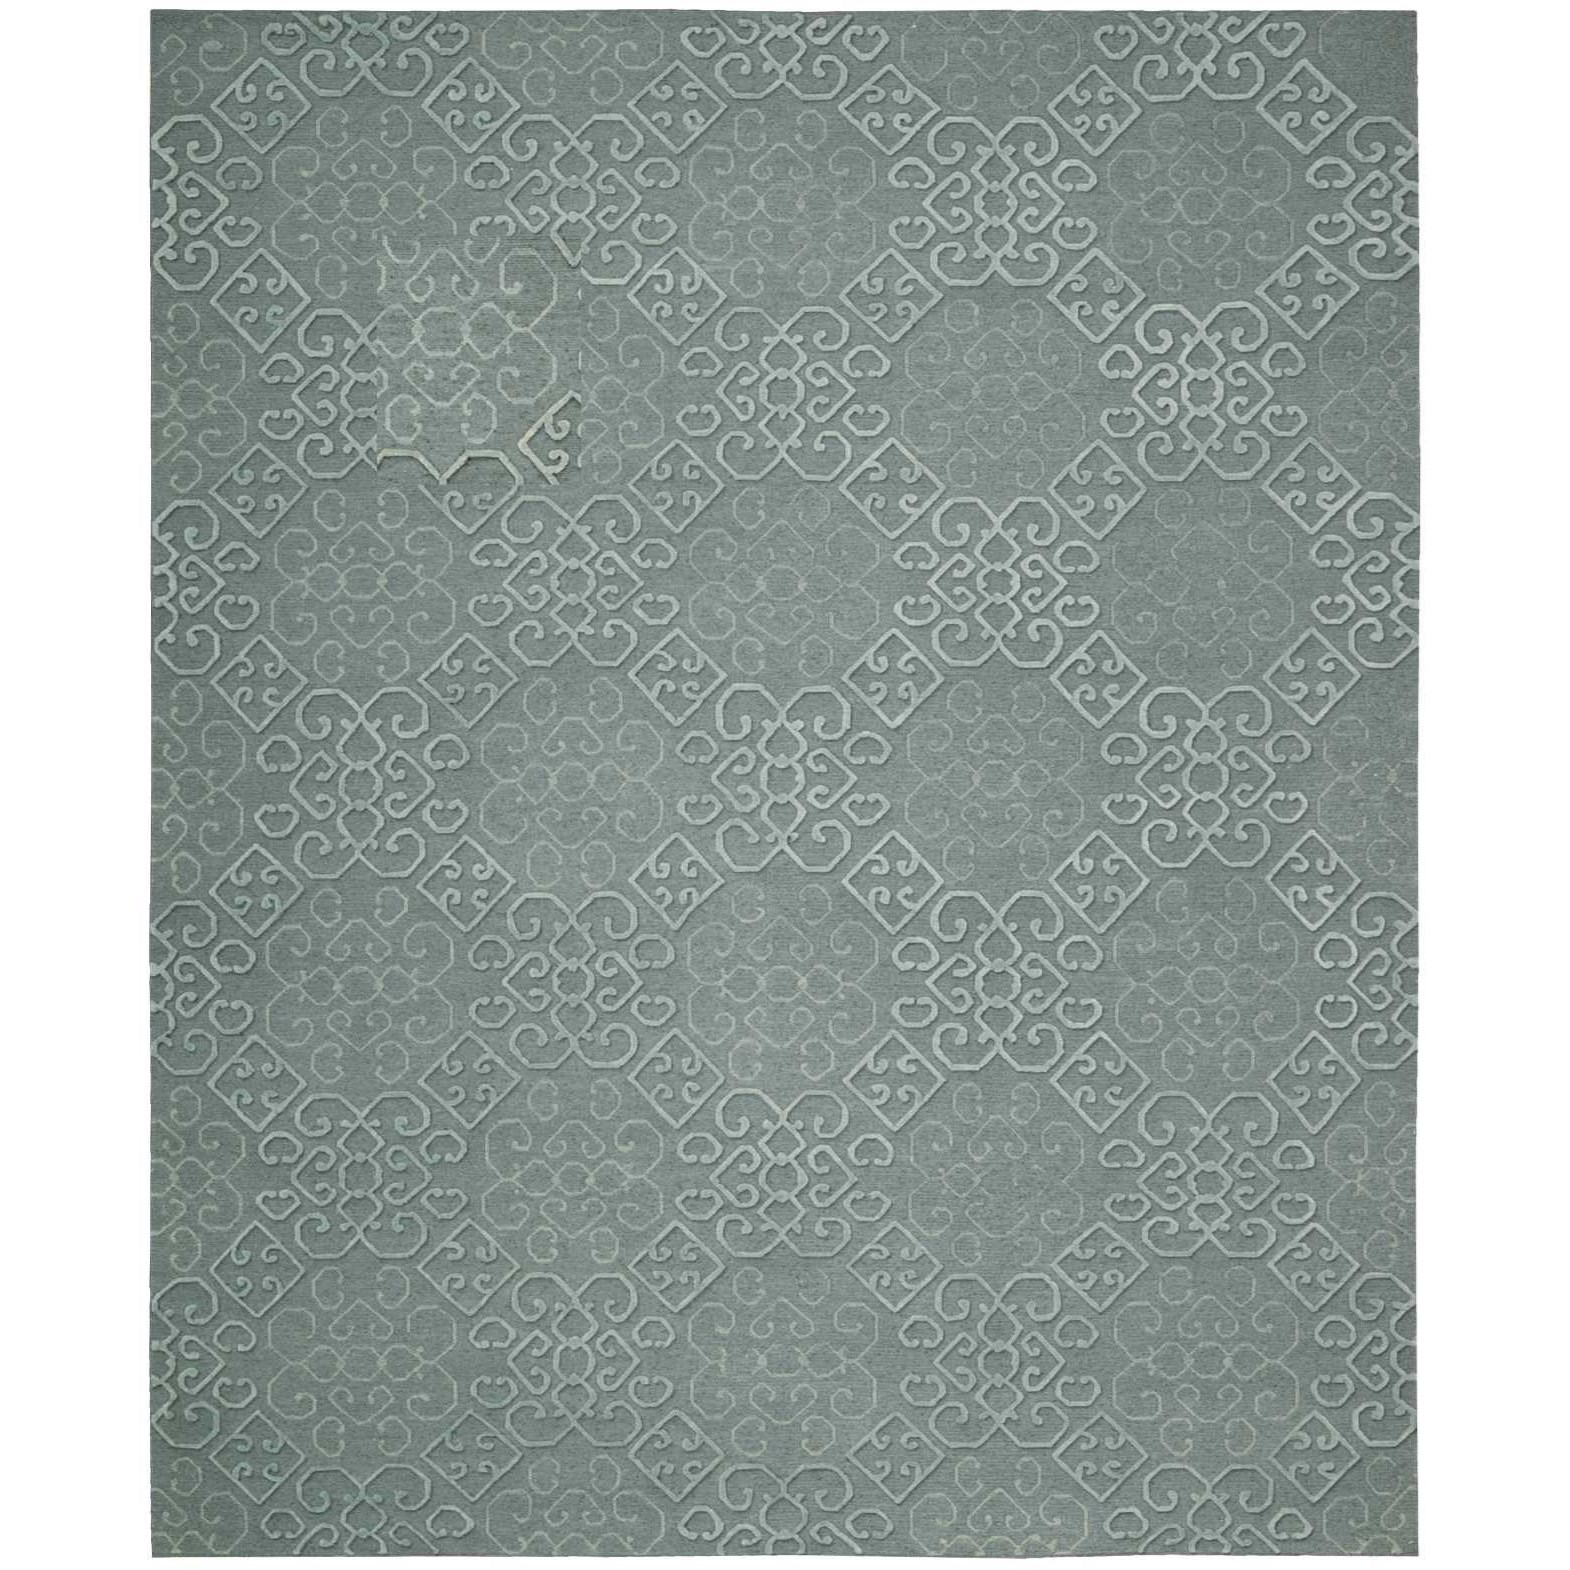 "Ambrose 7'9"" x 9'9"" Slate Rectangle Rug by Nourison at Sprintz Furniture"